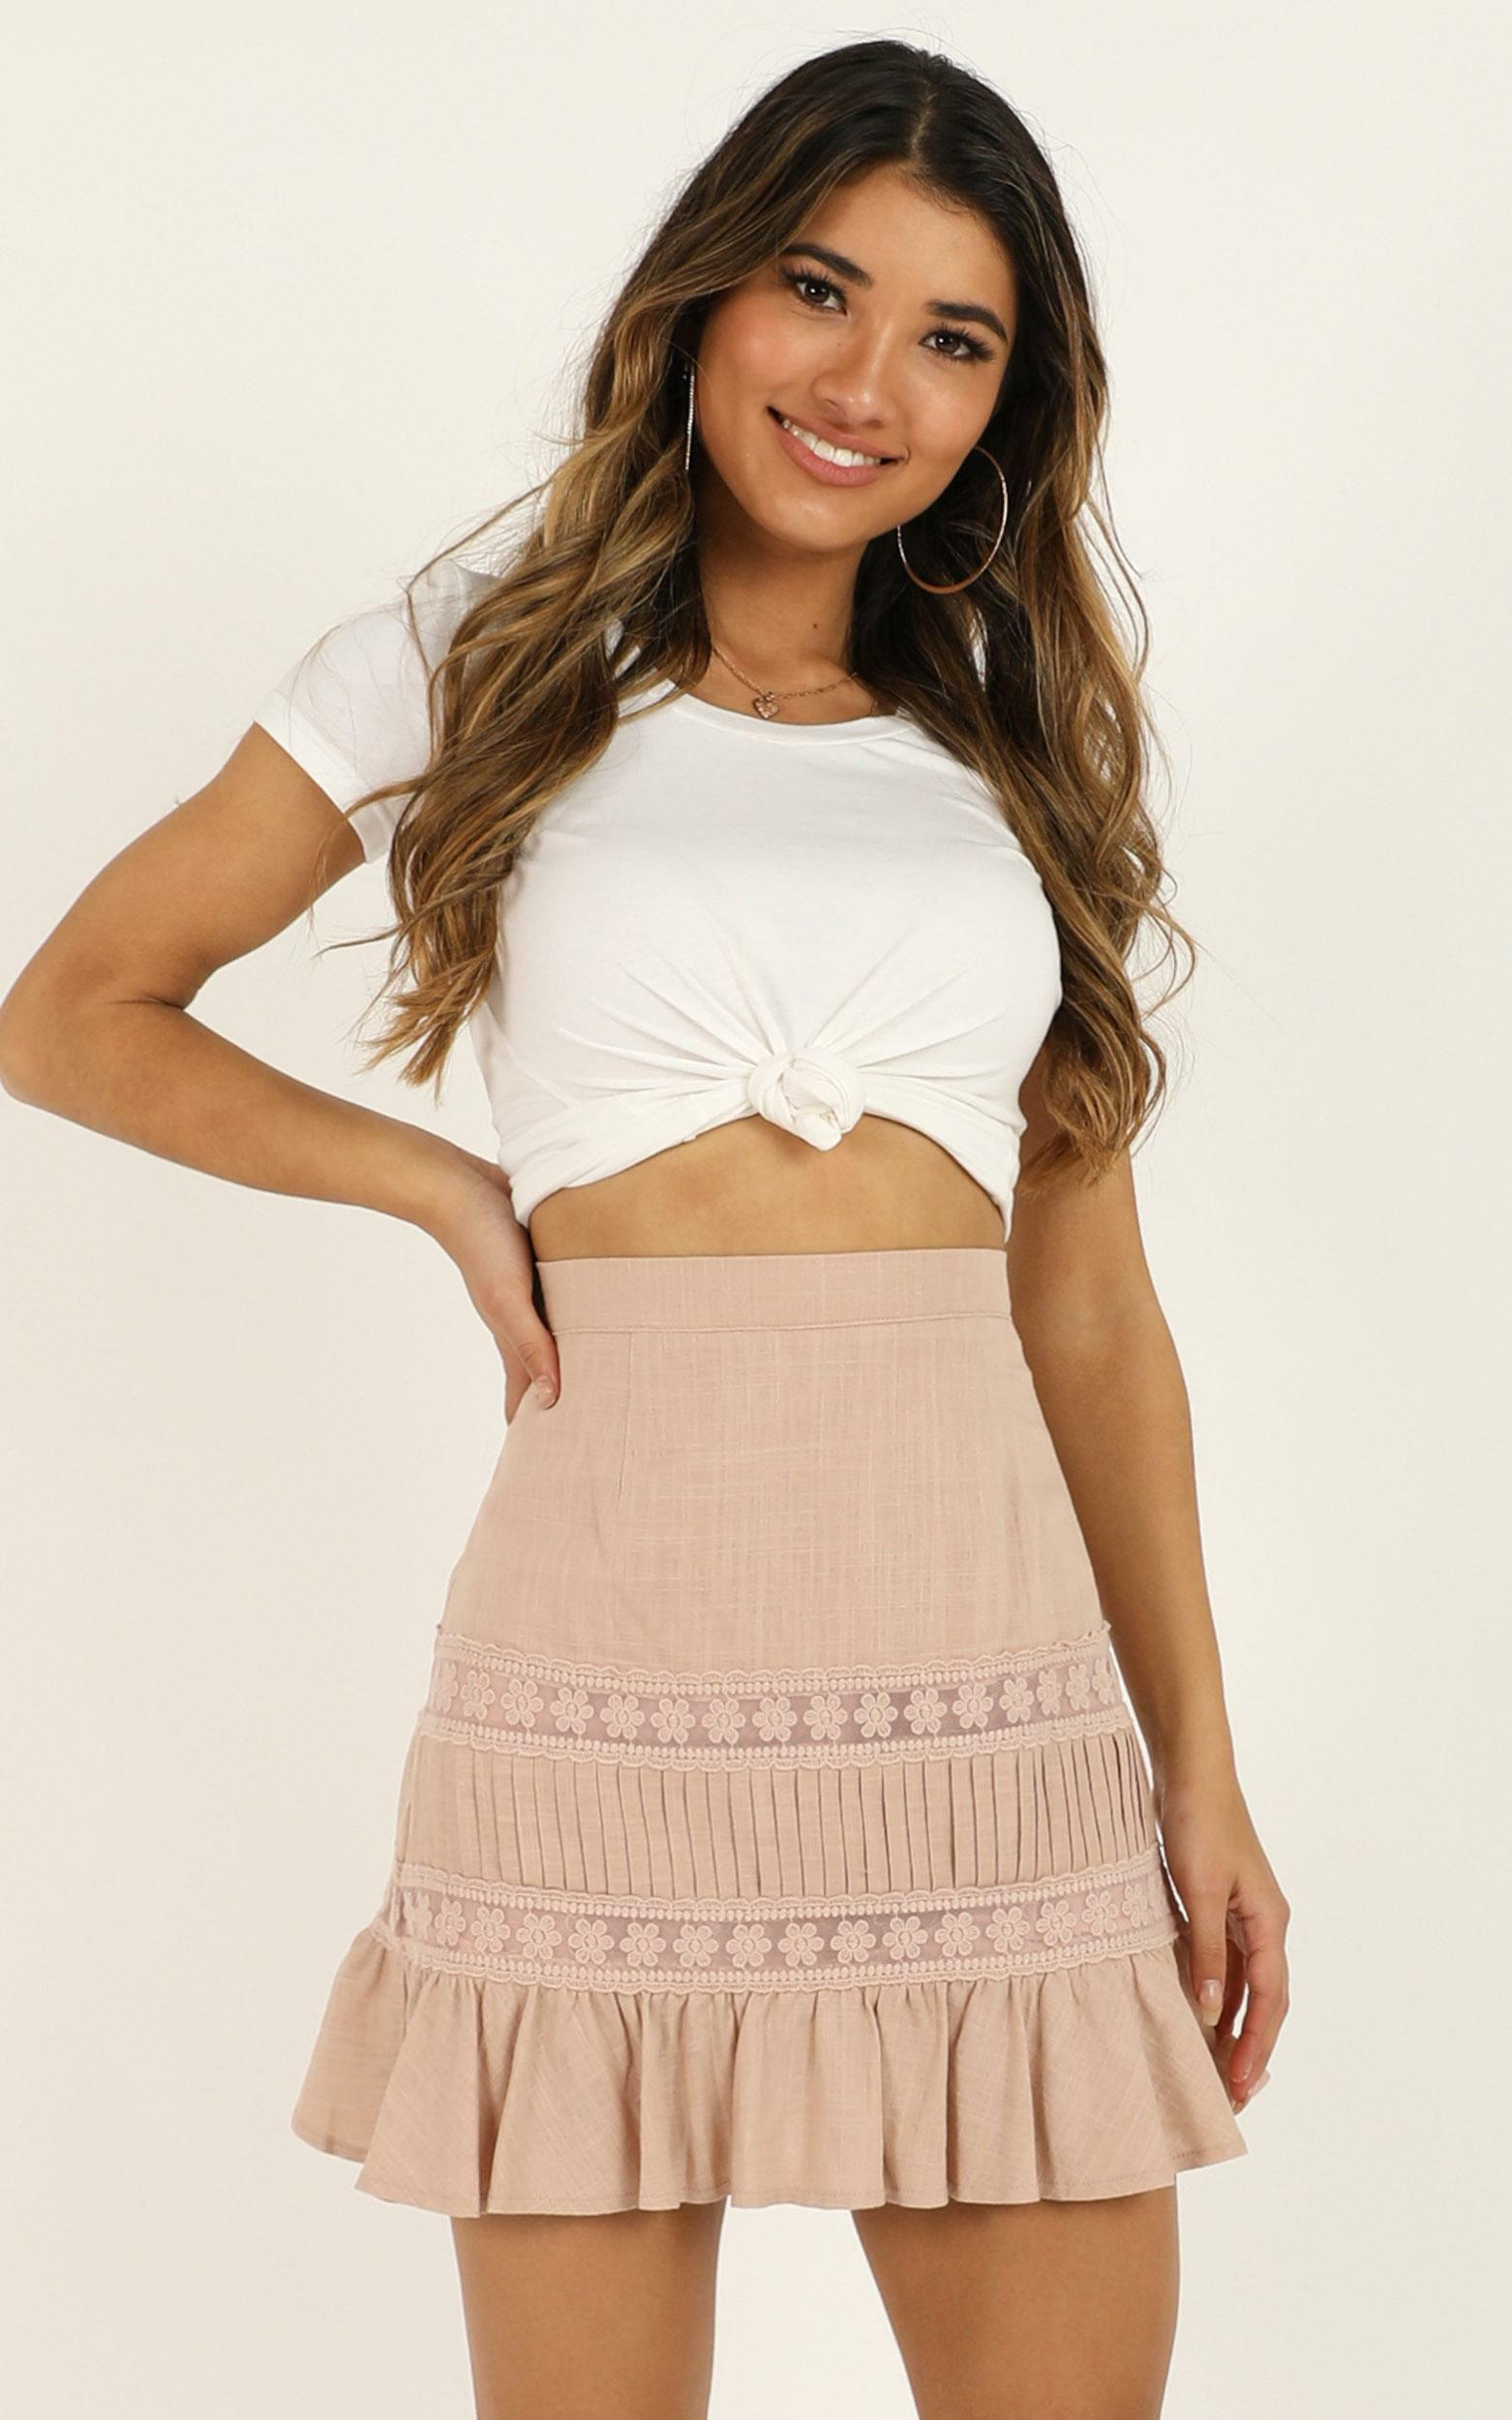 Leave It Here Skirt in blush linen look - 12 (L), Blush, hi-res image number null